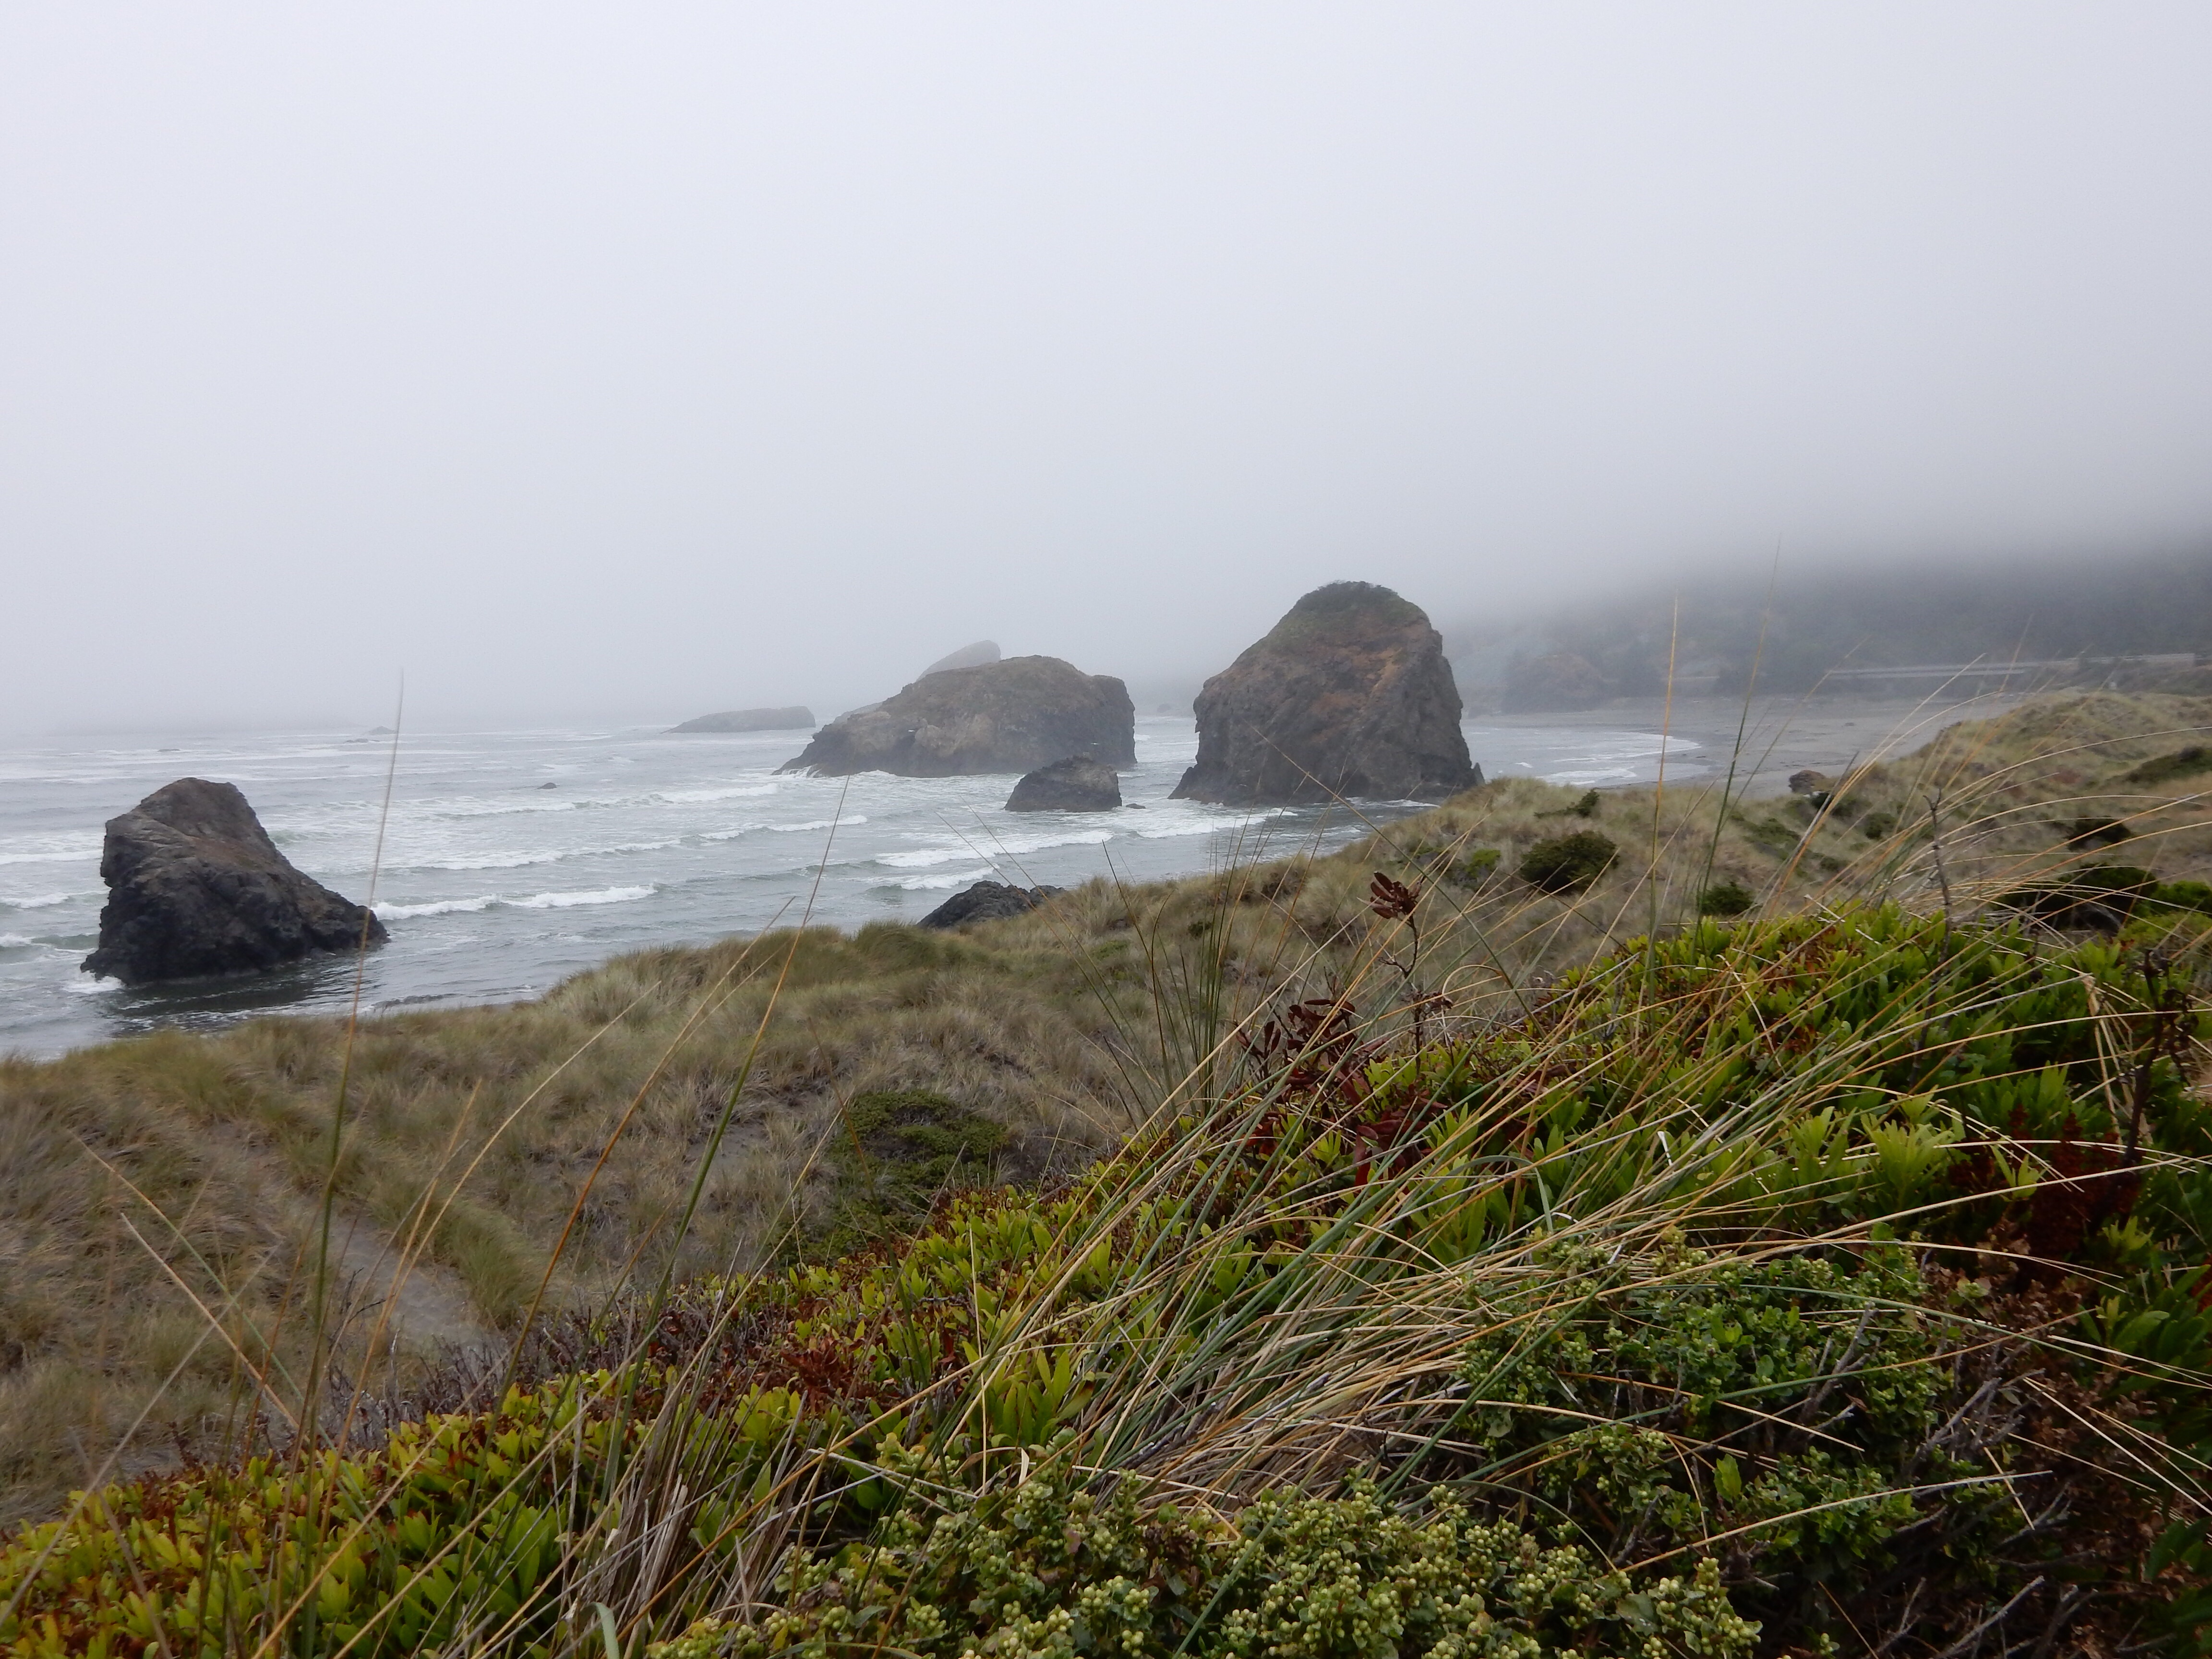 Looking north towards the coastal monoliths south of the mouth of Myers Creek.